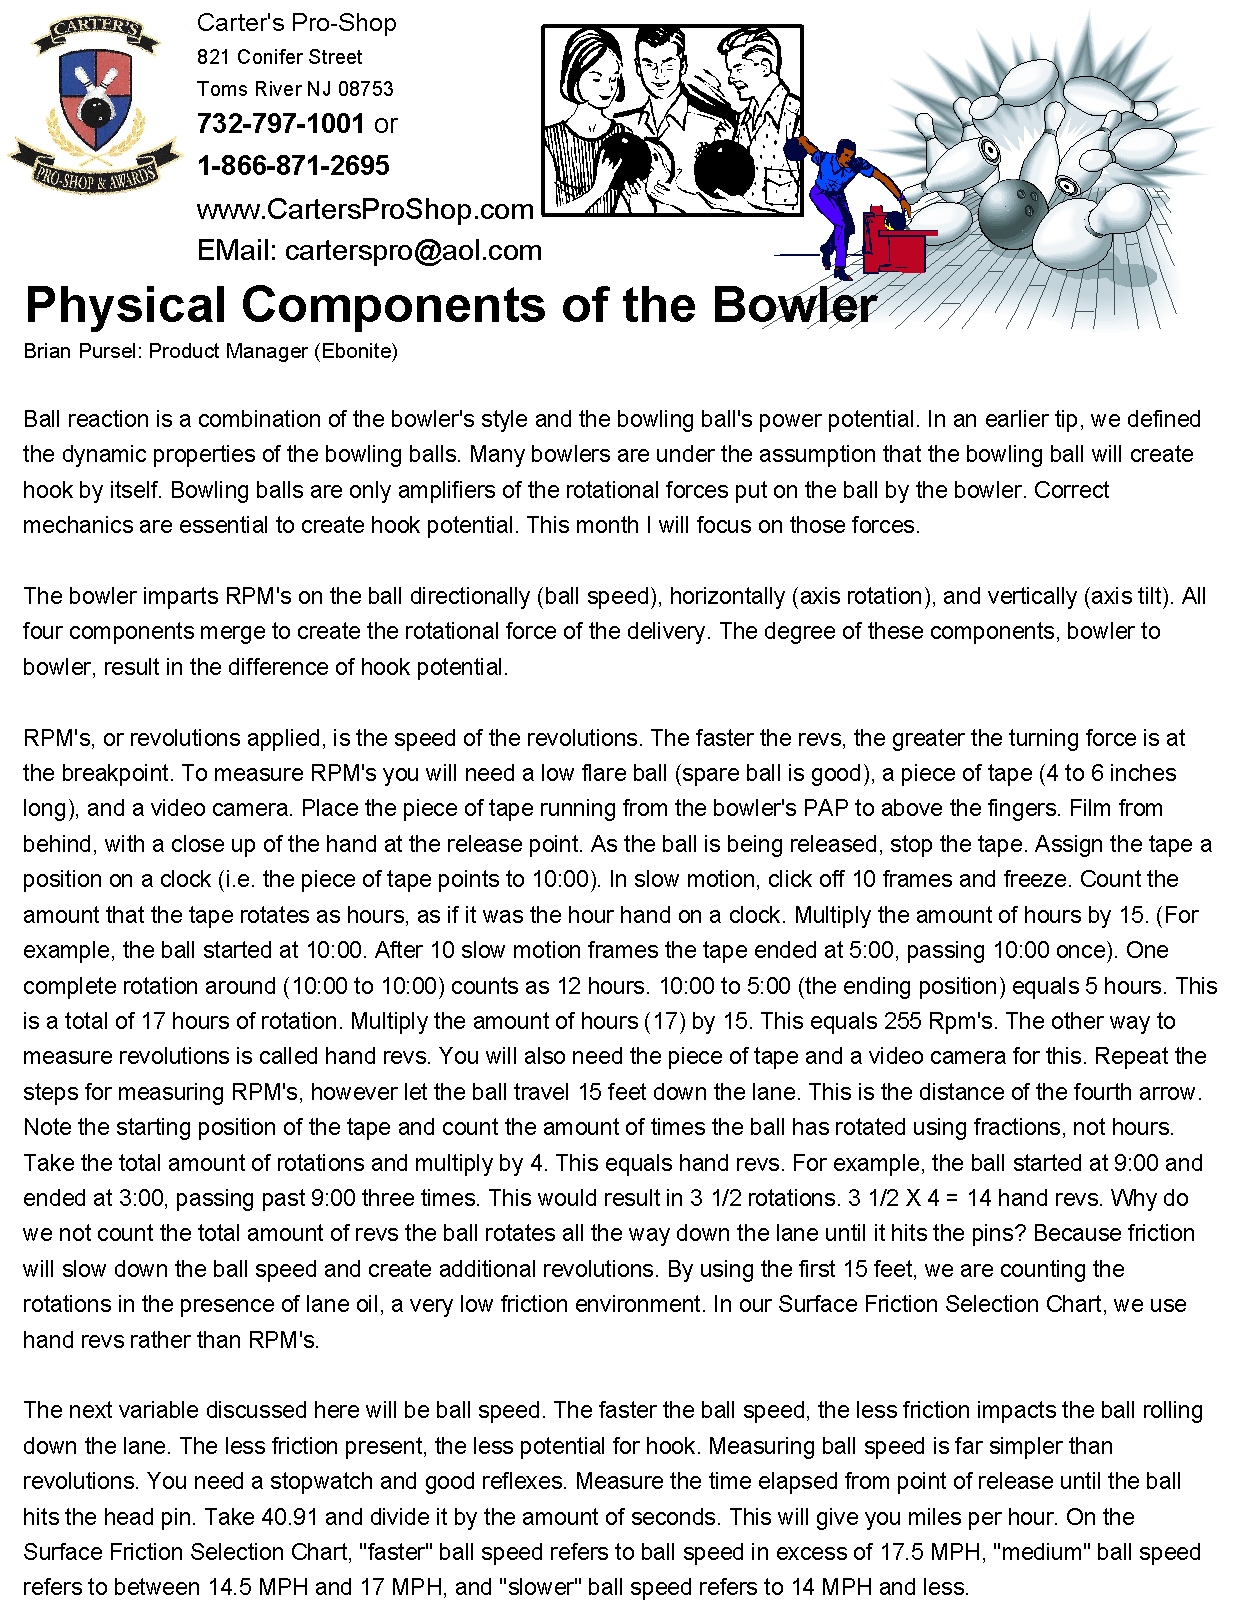 Physical Components Of The Bowler